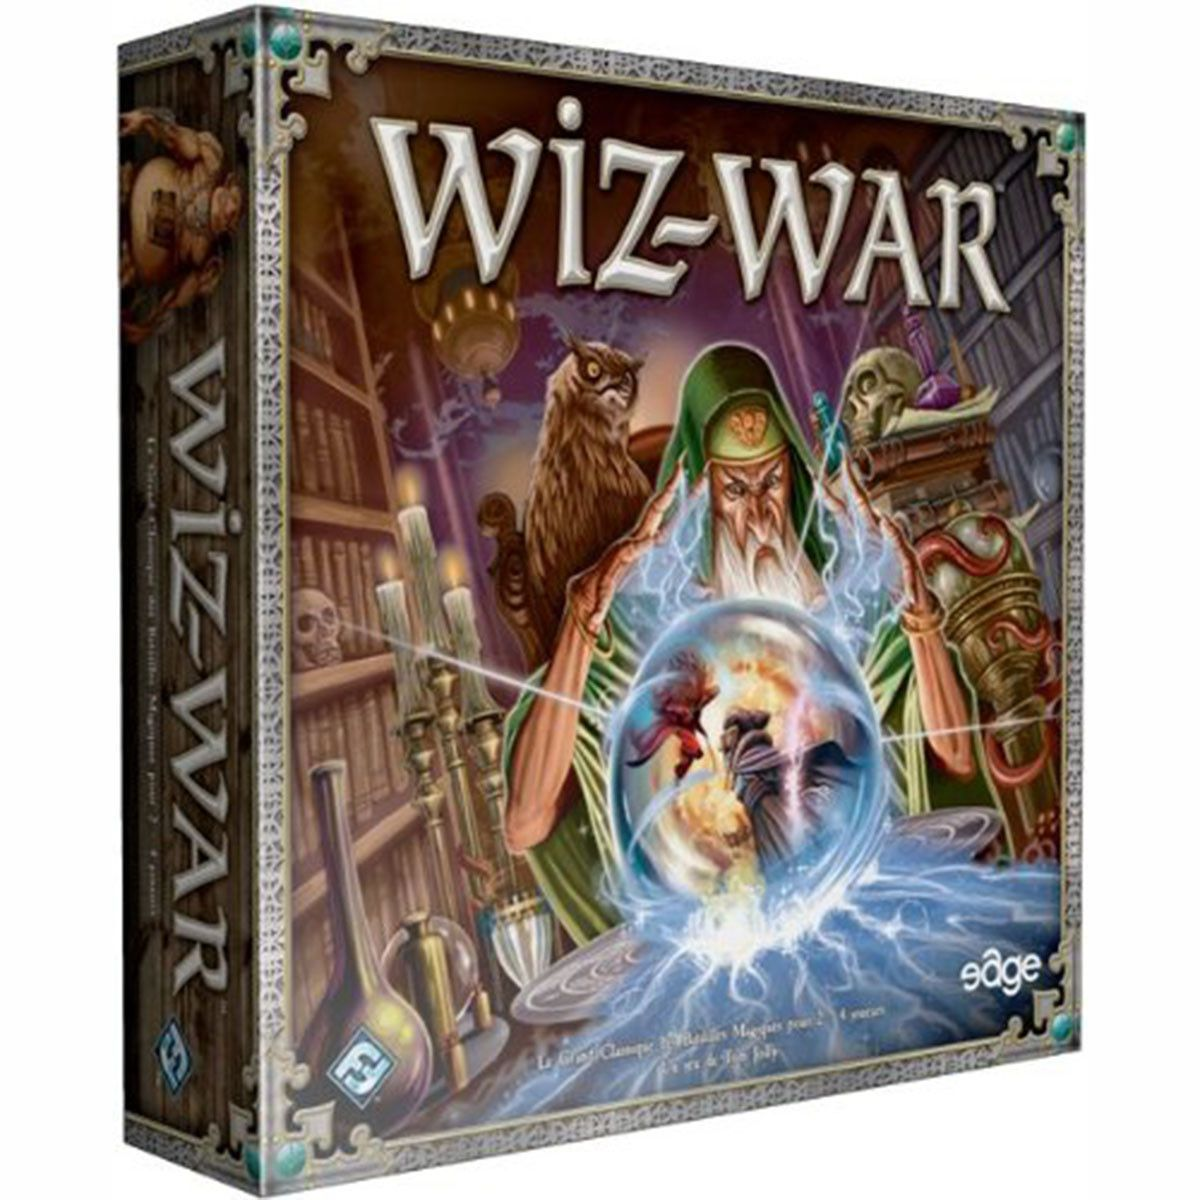 This is WizWar, a strategy board game that has been